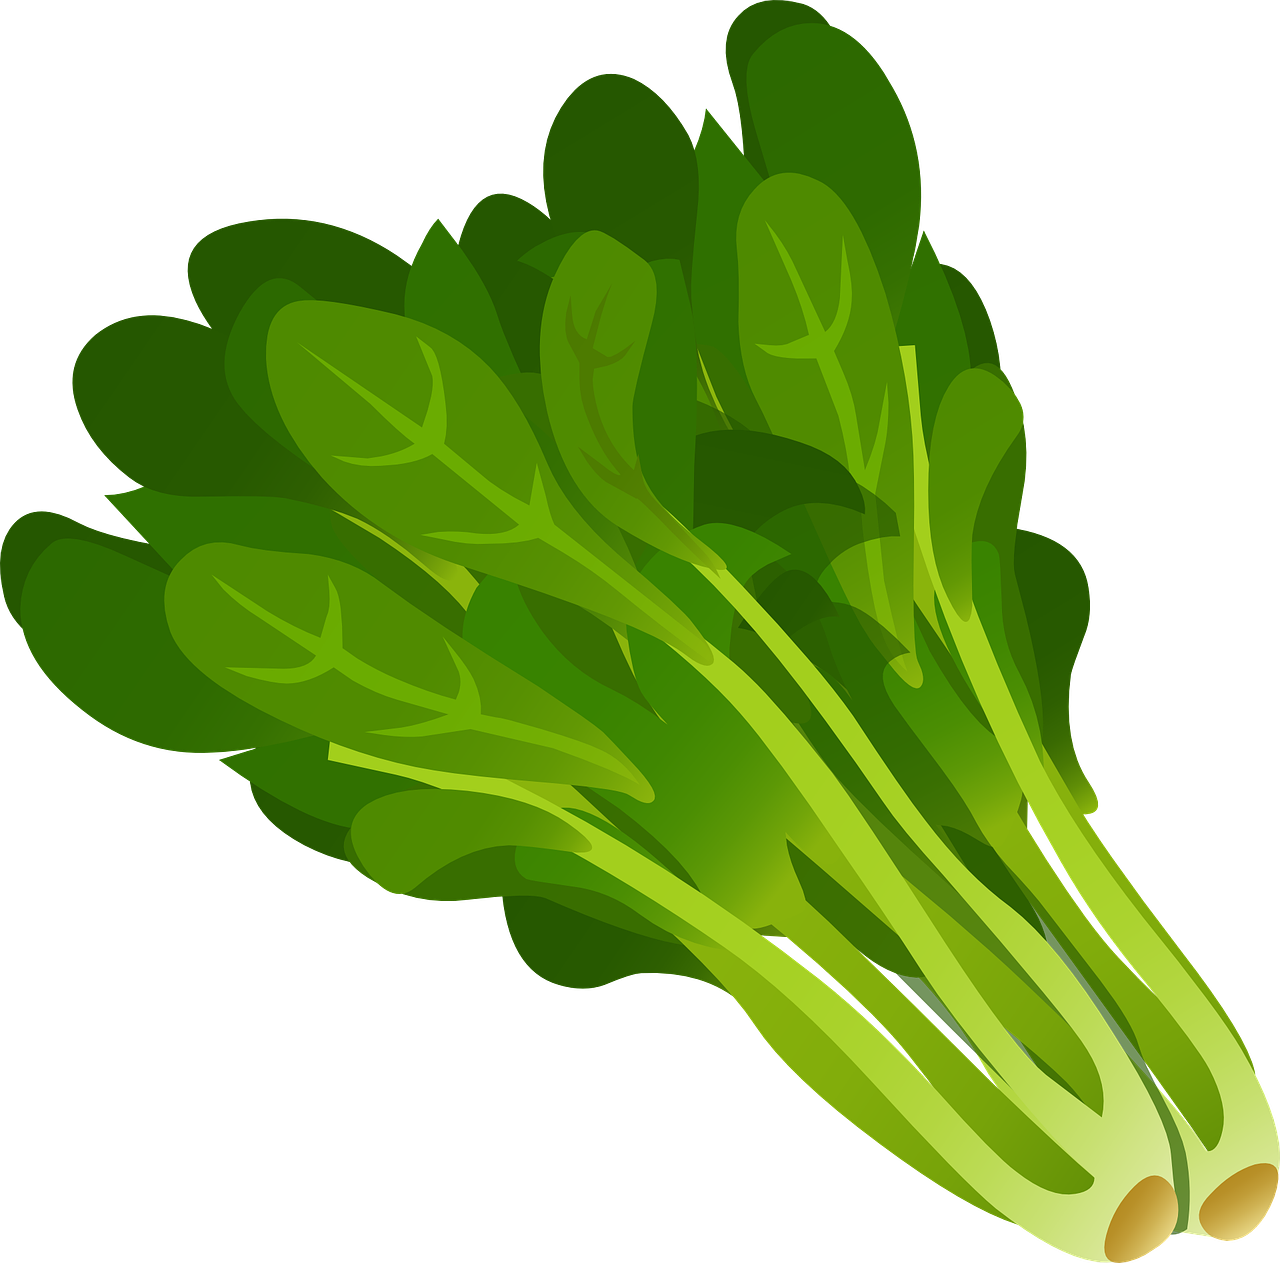 Freeze dried products product. Green clipart okra